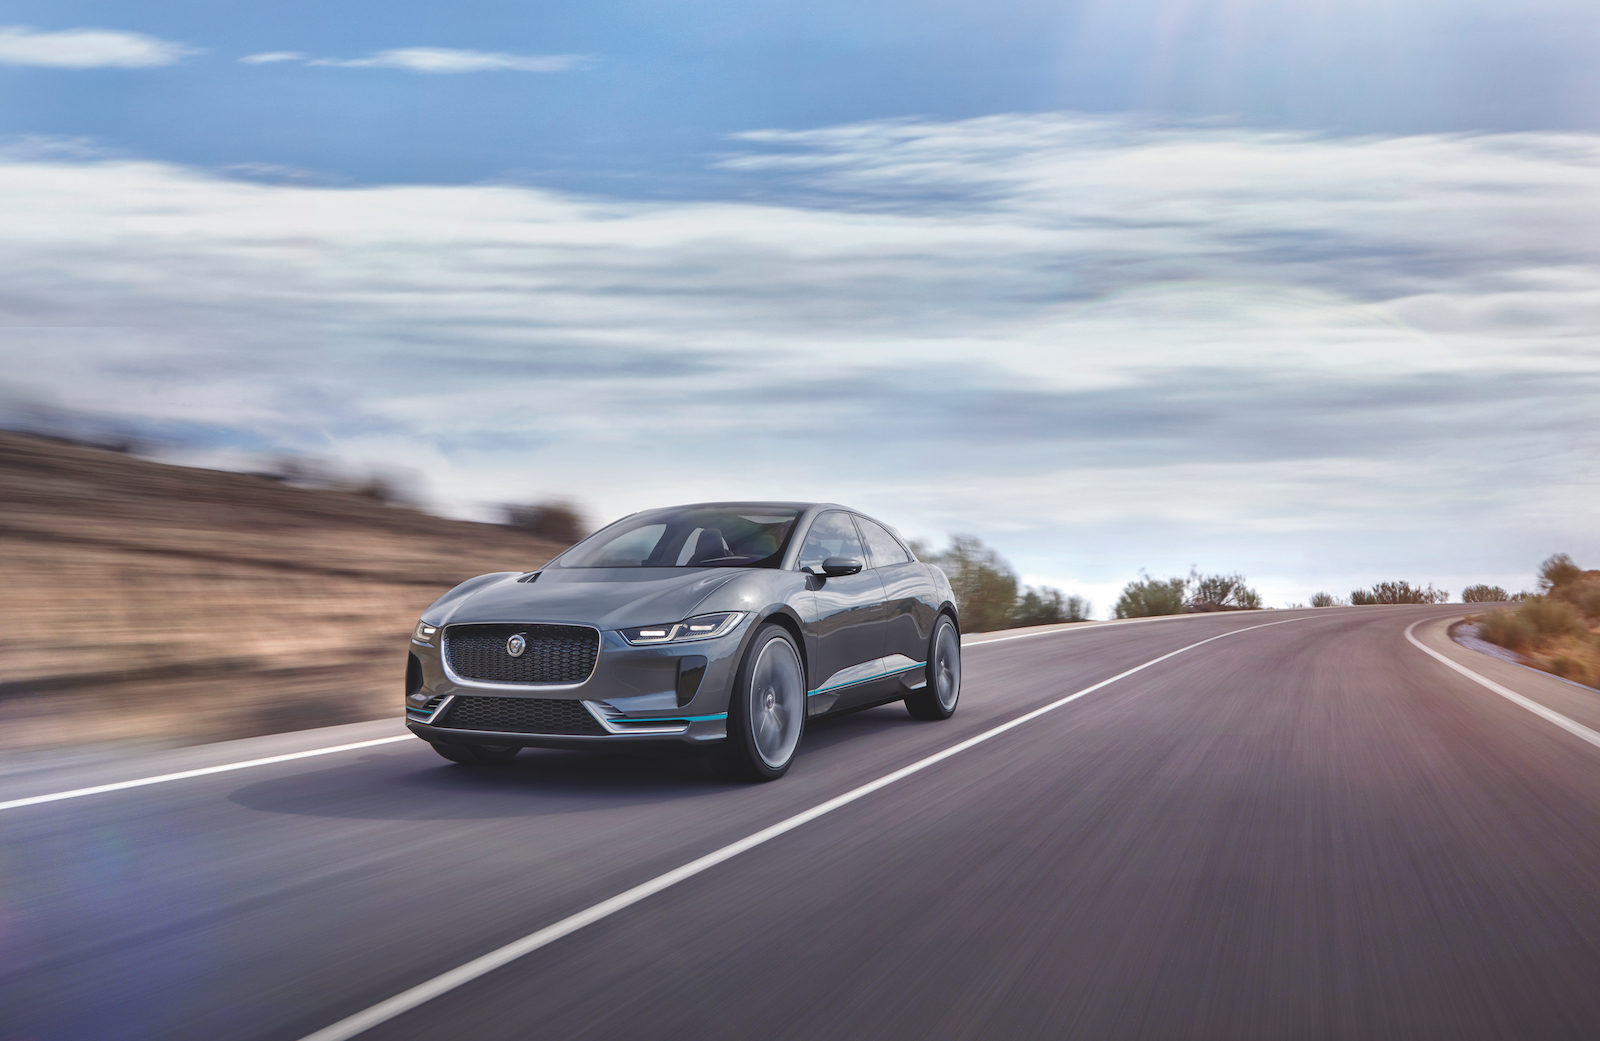 new-electric-jaguar-i-pace-crossover-concept-4